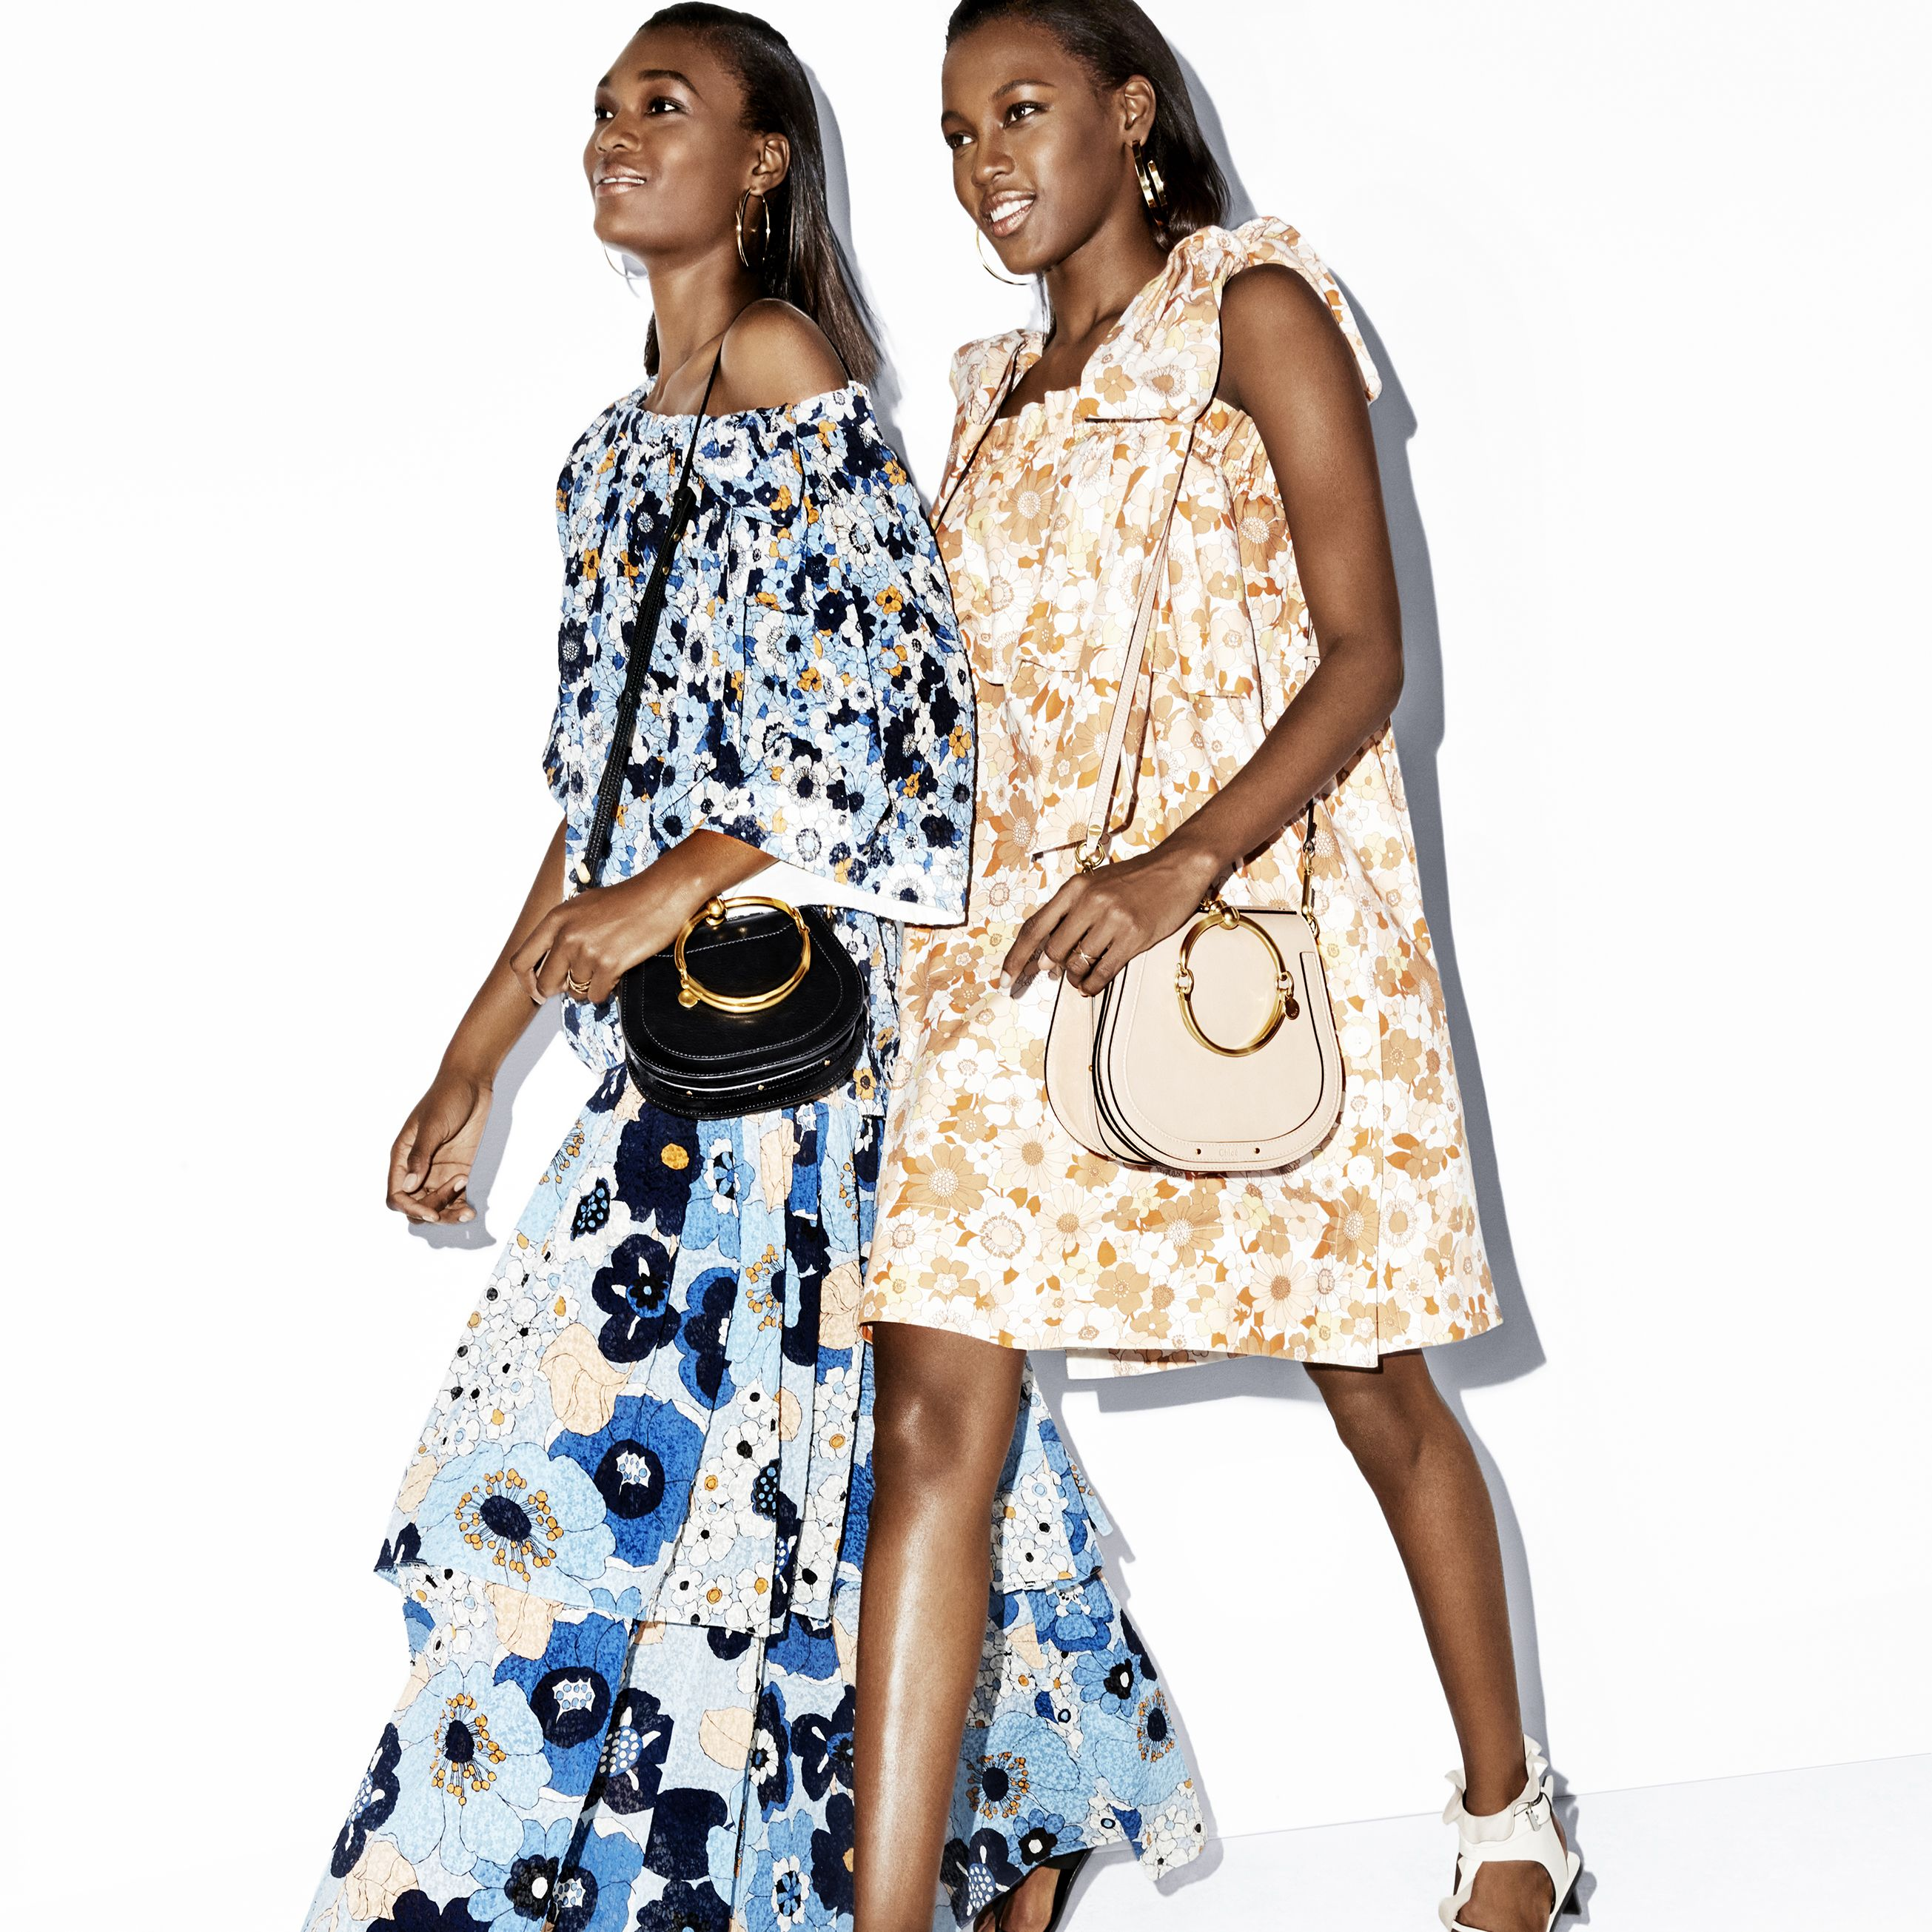 "<p>On Naki (left):&nbsp&#x3B;<strong data-redactor-tag=""strong"" data-verified=""redactor"">Chloé</strong> top, $1,395, skirt, $2,395, and bag, $1,550&#x3B;&nbsp&#x3B;<strong data-redactor-tag=""strong"" data-verified=""redactor"">Jennifer Fisher</strong> earrings, $295–$365&#x3B;&nbsp&#x3B;<strong data-redactor-tag=""strong"" data-verified=""redactor"">Isabel Marant </strong>sandals, $765.&nbsp&#x3B;On Kai:&nbsp&#x3B;<strong data-redactor-tag=""strong"" data-verified=""redactor"">Chloé </strong>dress, $1,595, and bag, $1,690&#x3B;&nbsp&#x3B;<strong data-redactor-tag=""strong"" data-verified=""redactor"">Jennifer Fisher </strong>earrings, $295–$365&#x3B;&nbsp&#x3B;<strong data-redactor-tag=""strong"" data-verified=""redactor"">Isabel Marant </strong>sandals, $1,005, all items&nbsp&#x3B;available at <a href=""https://shop.harpersbazaar.com/"" target=""_blank"" data-tracking-id=""recirc-text-link"">shopBAZAAR.com</a>.<span class=""redactor-invisible-space"" data-verified=""redactor"" data-redactor-tag=""span"" data-redactor-class=""redactor-invisible-space""></span></p>"